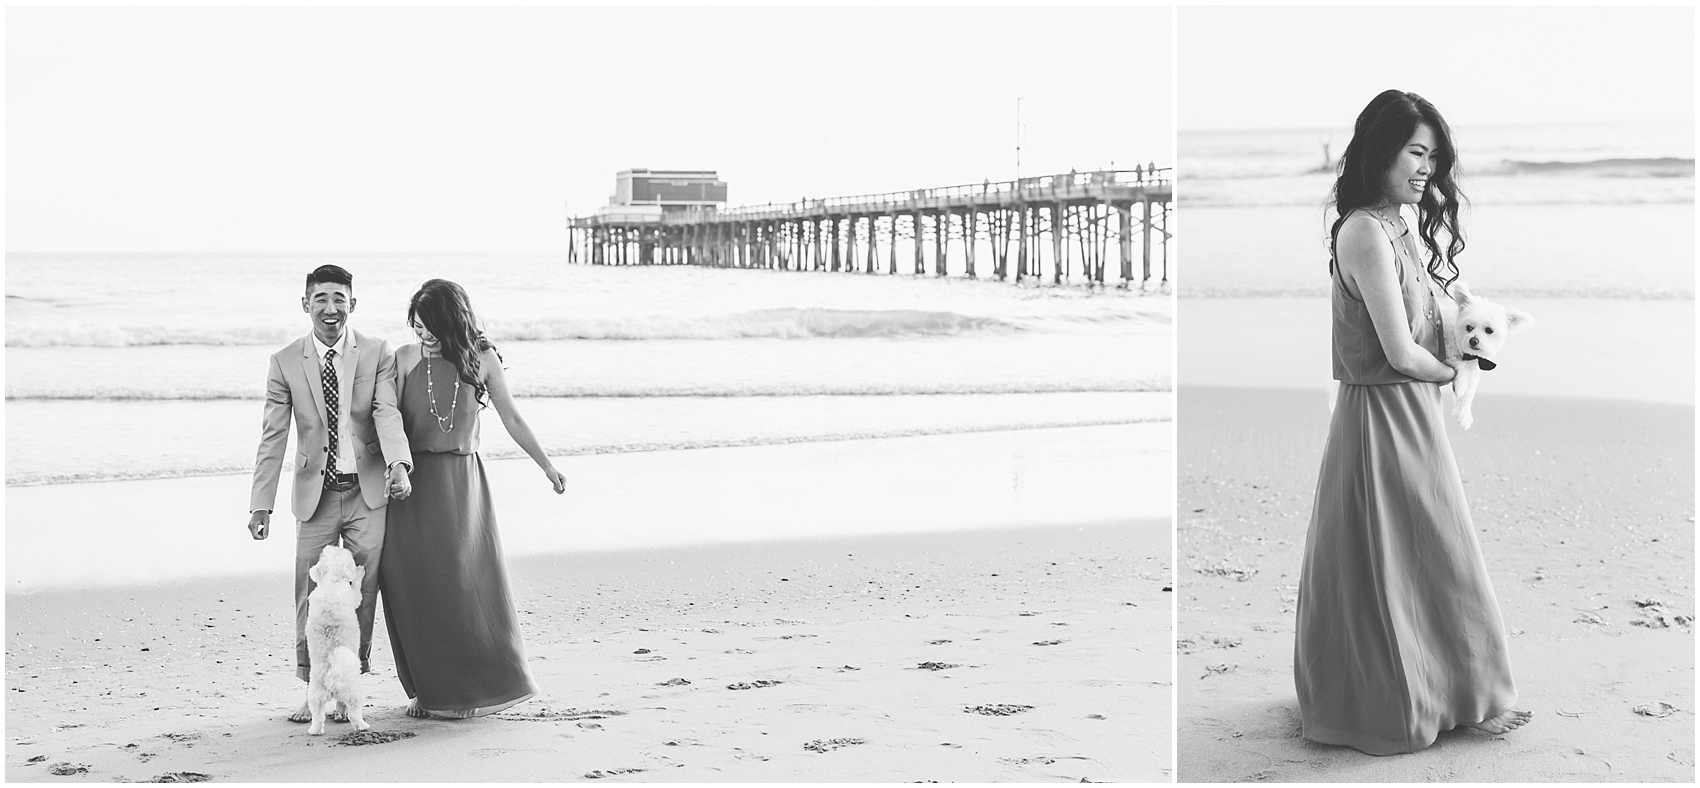 Newport Beach Engagement Photography Smetona Photo Bonnie Tim-0007.jpg